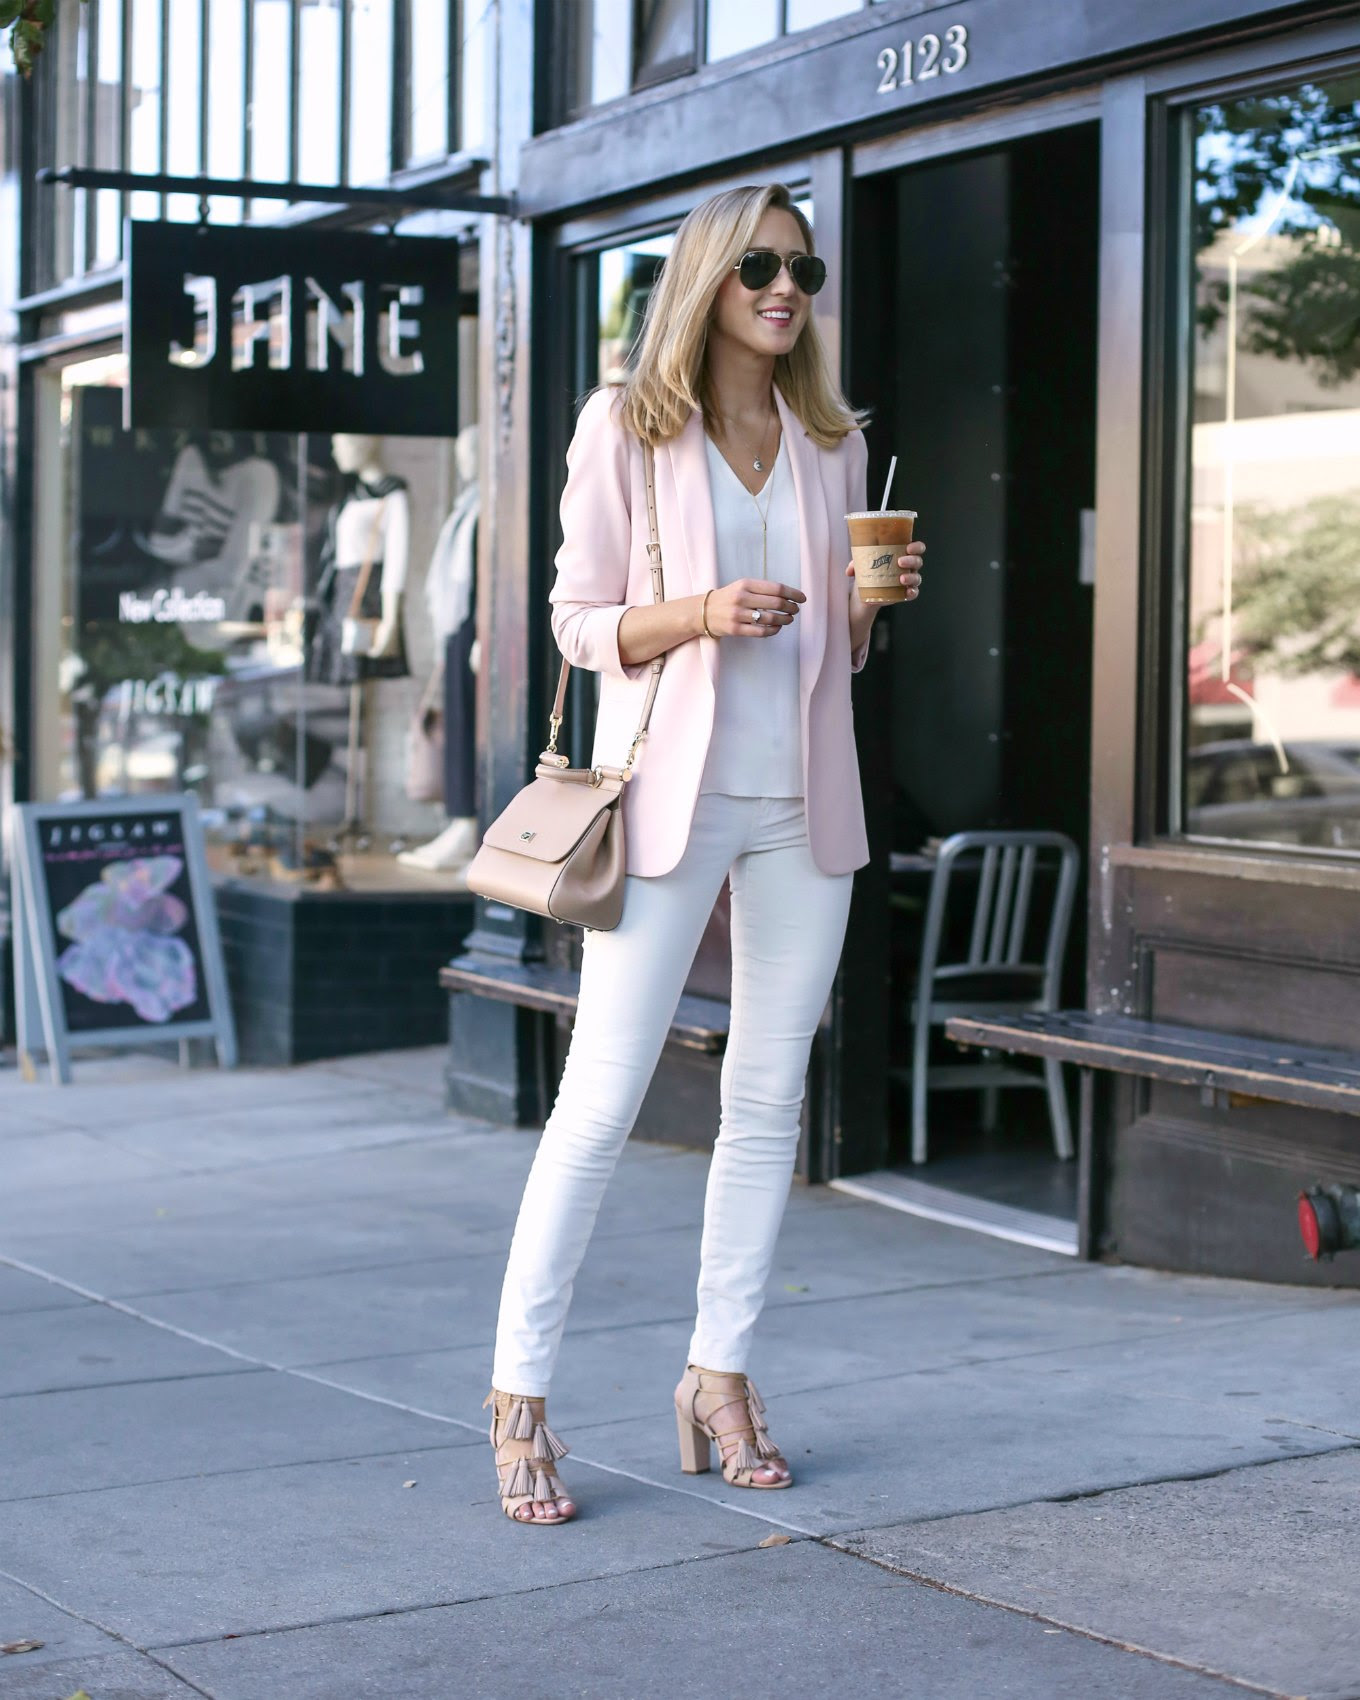 casual-friday-blush-blazer-white-skinny-jeans-nude-tassel-sandals-jane-fillmore-street-coffee-shop-san-francisco-style-fashion-blog4